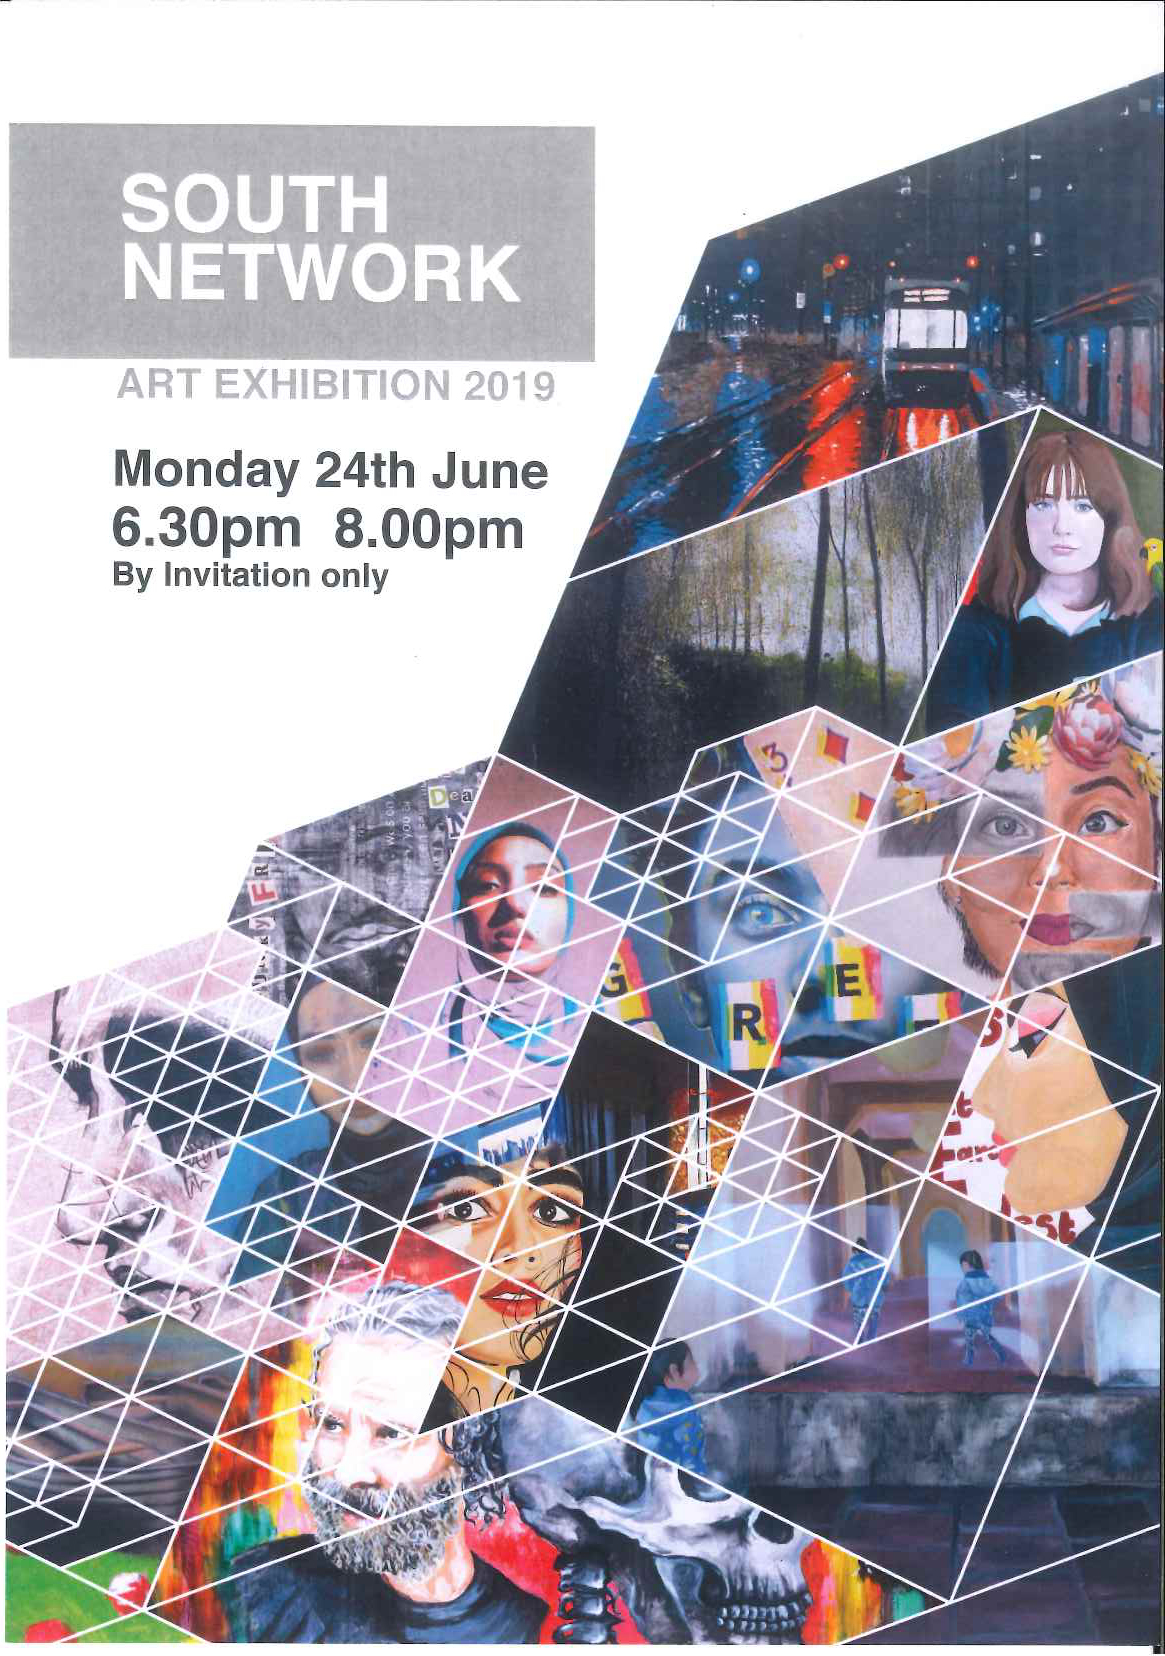 South Network Art Exhibition 2019